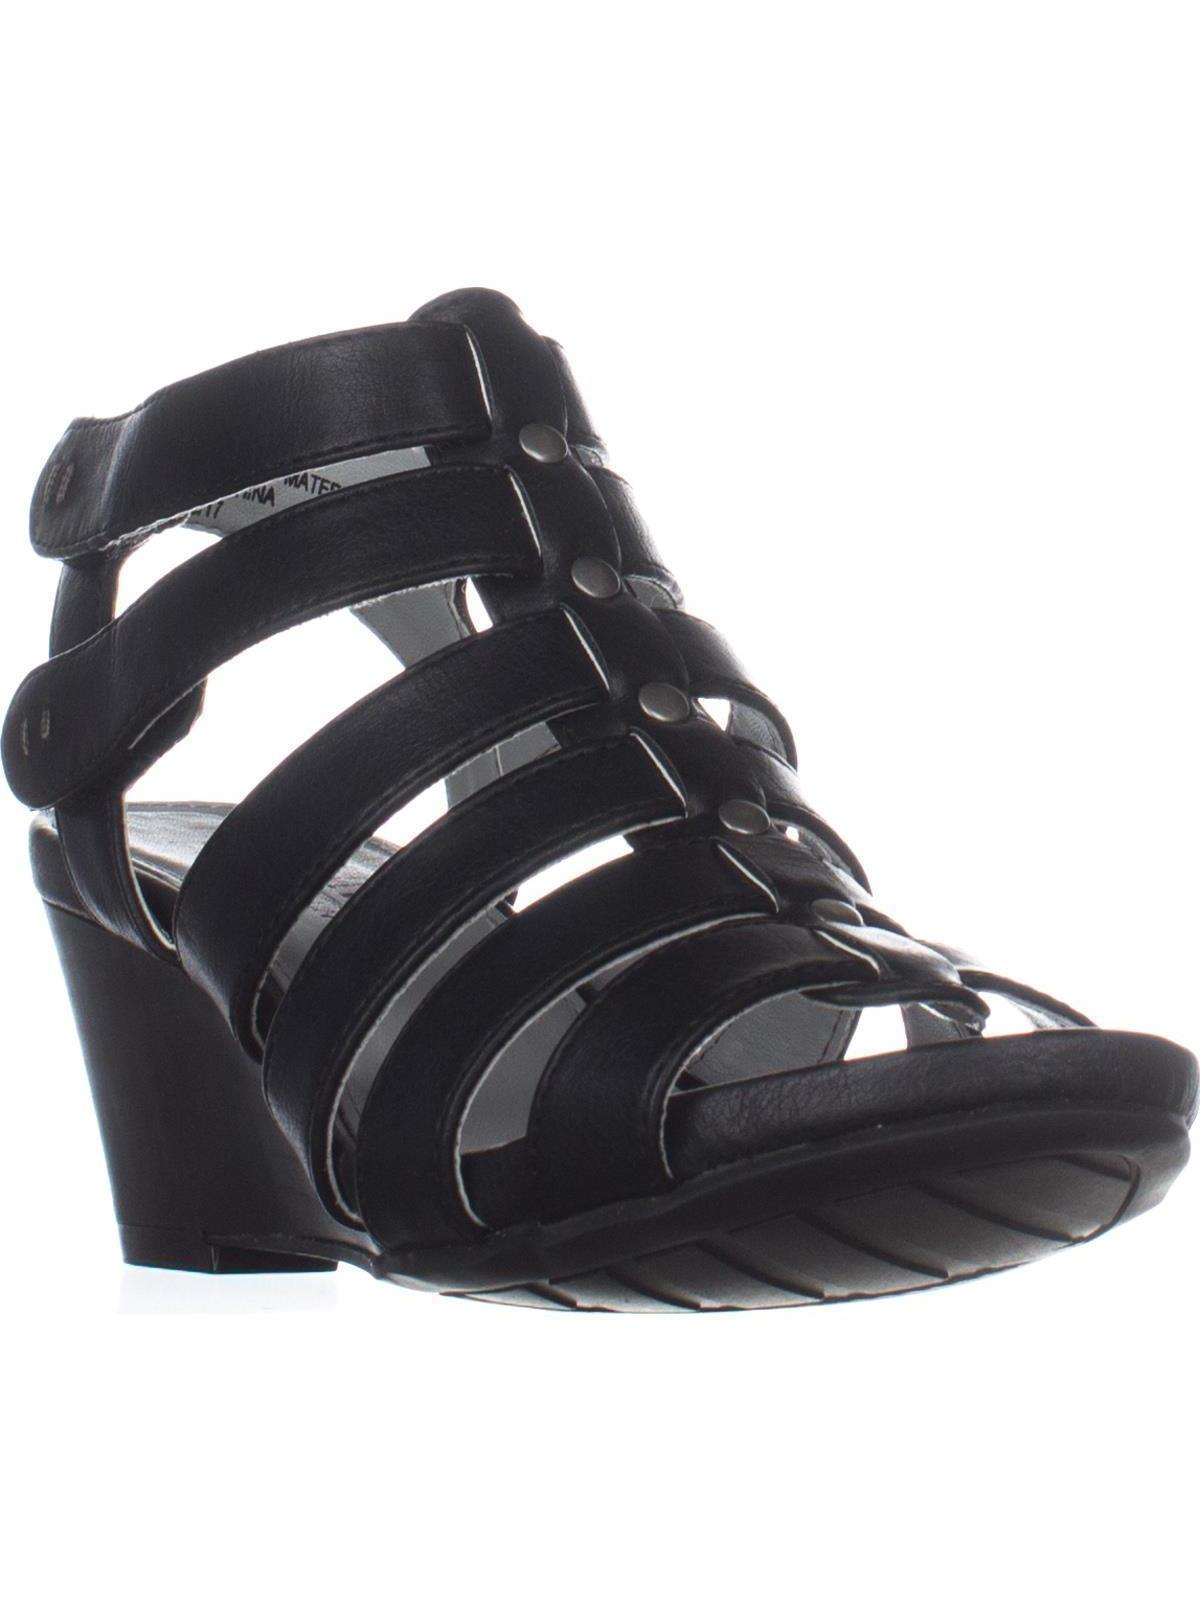 Womens Cliffs by White Mountain Vivaldi Gladiator Wedges, Black